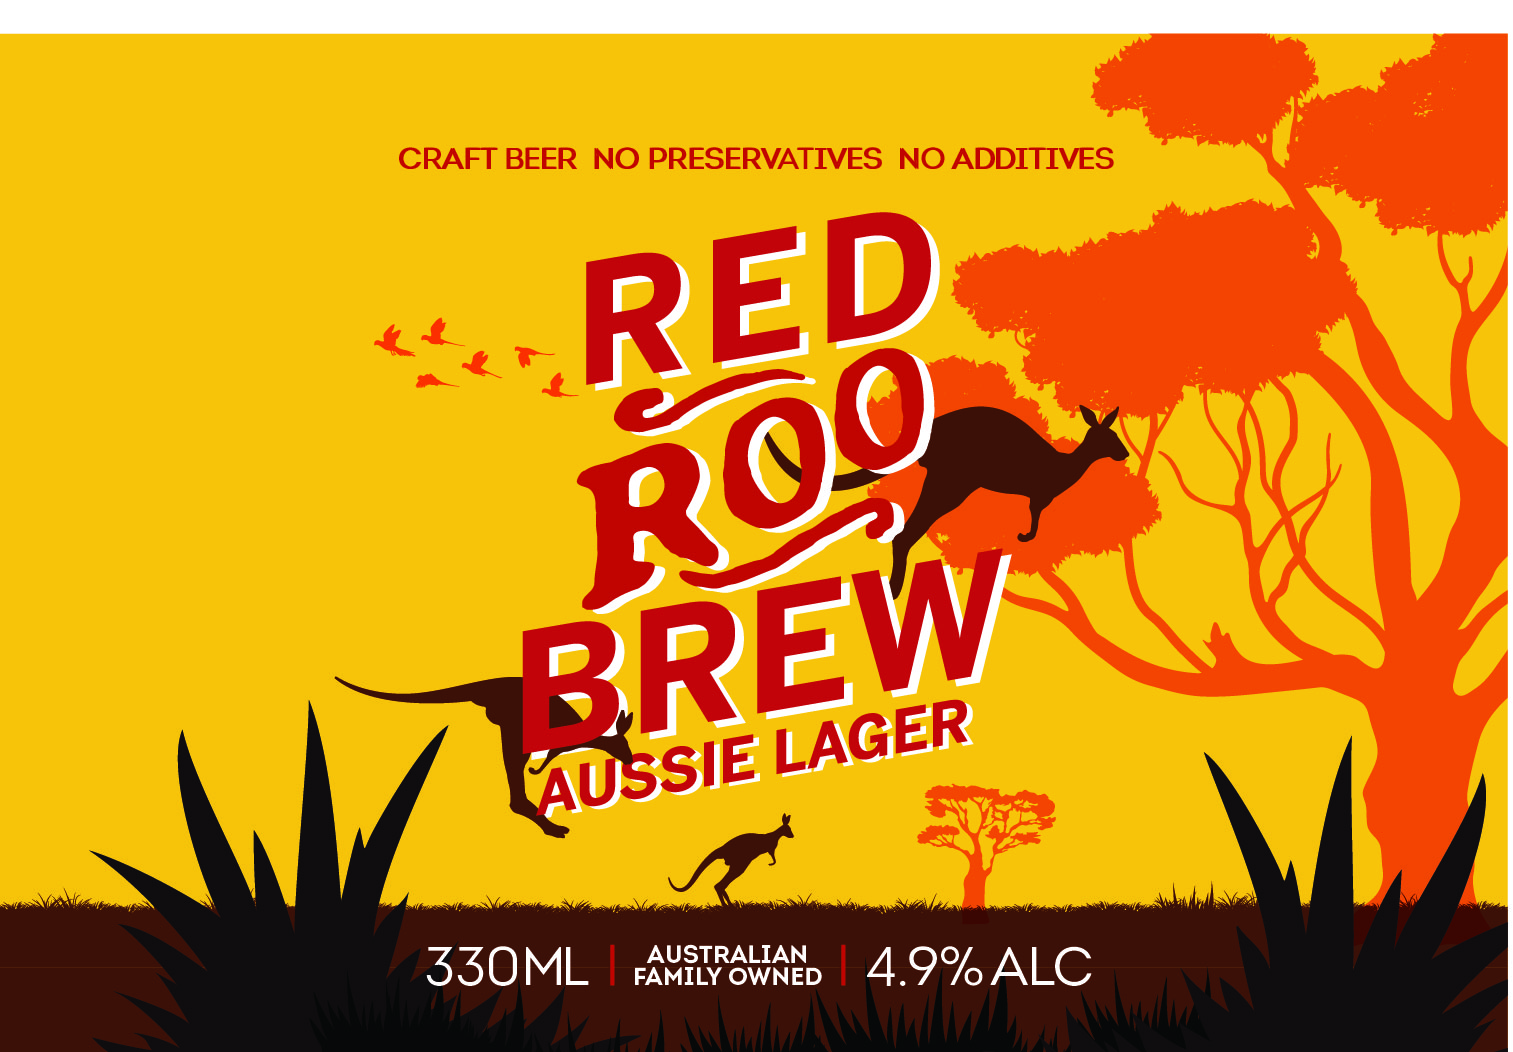 Red roo brew_artwork_wip_C1-05-05